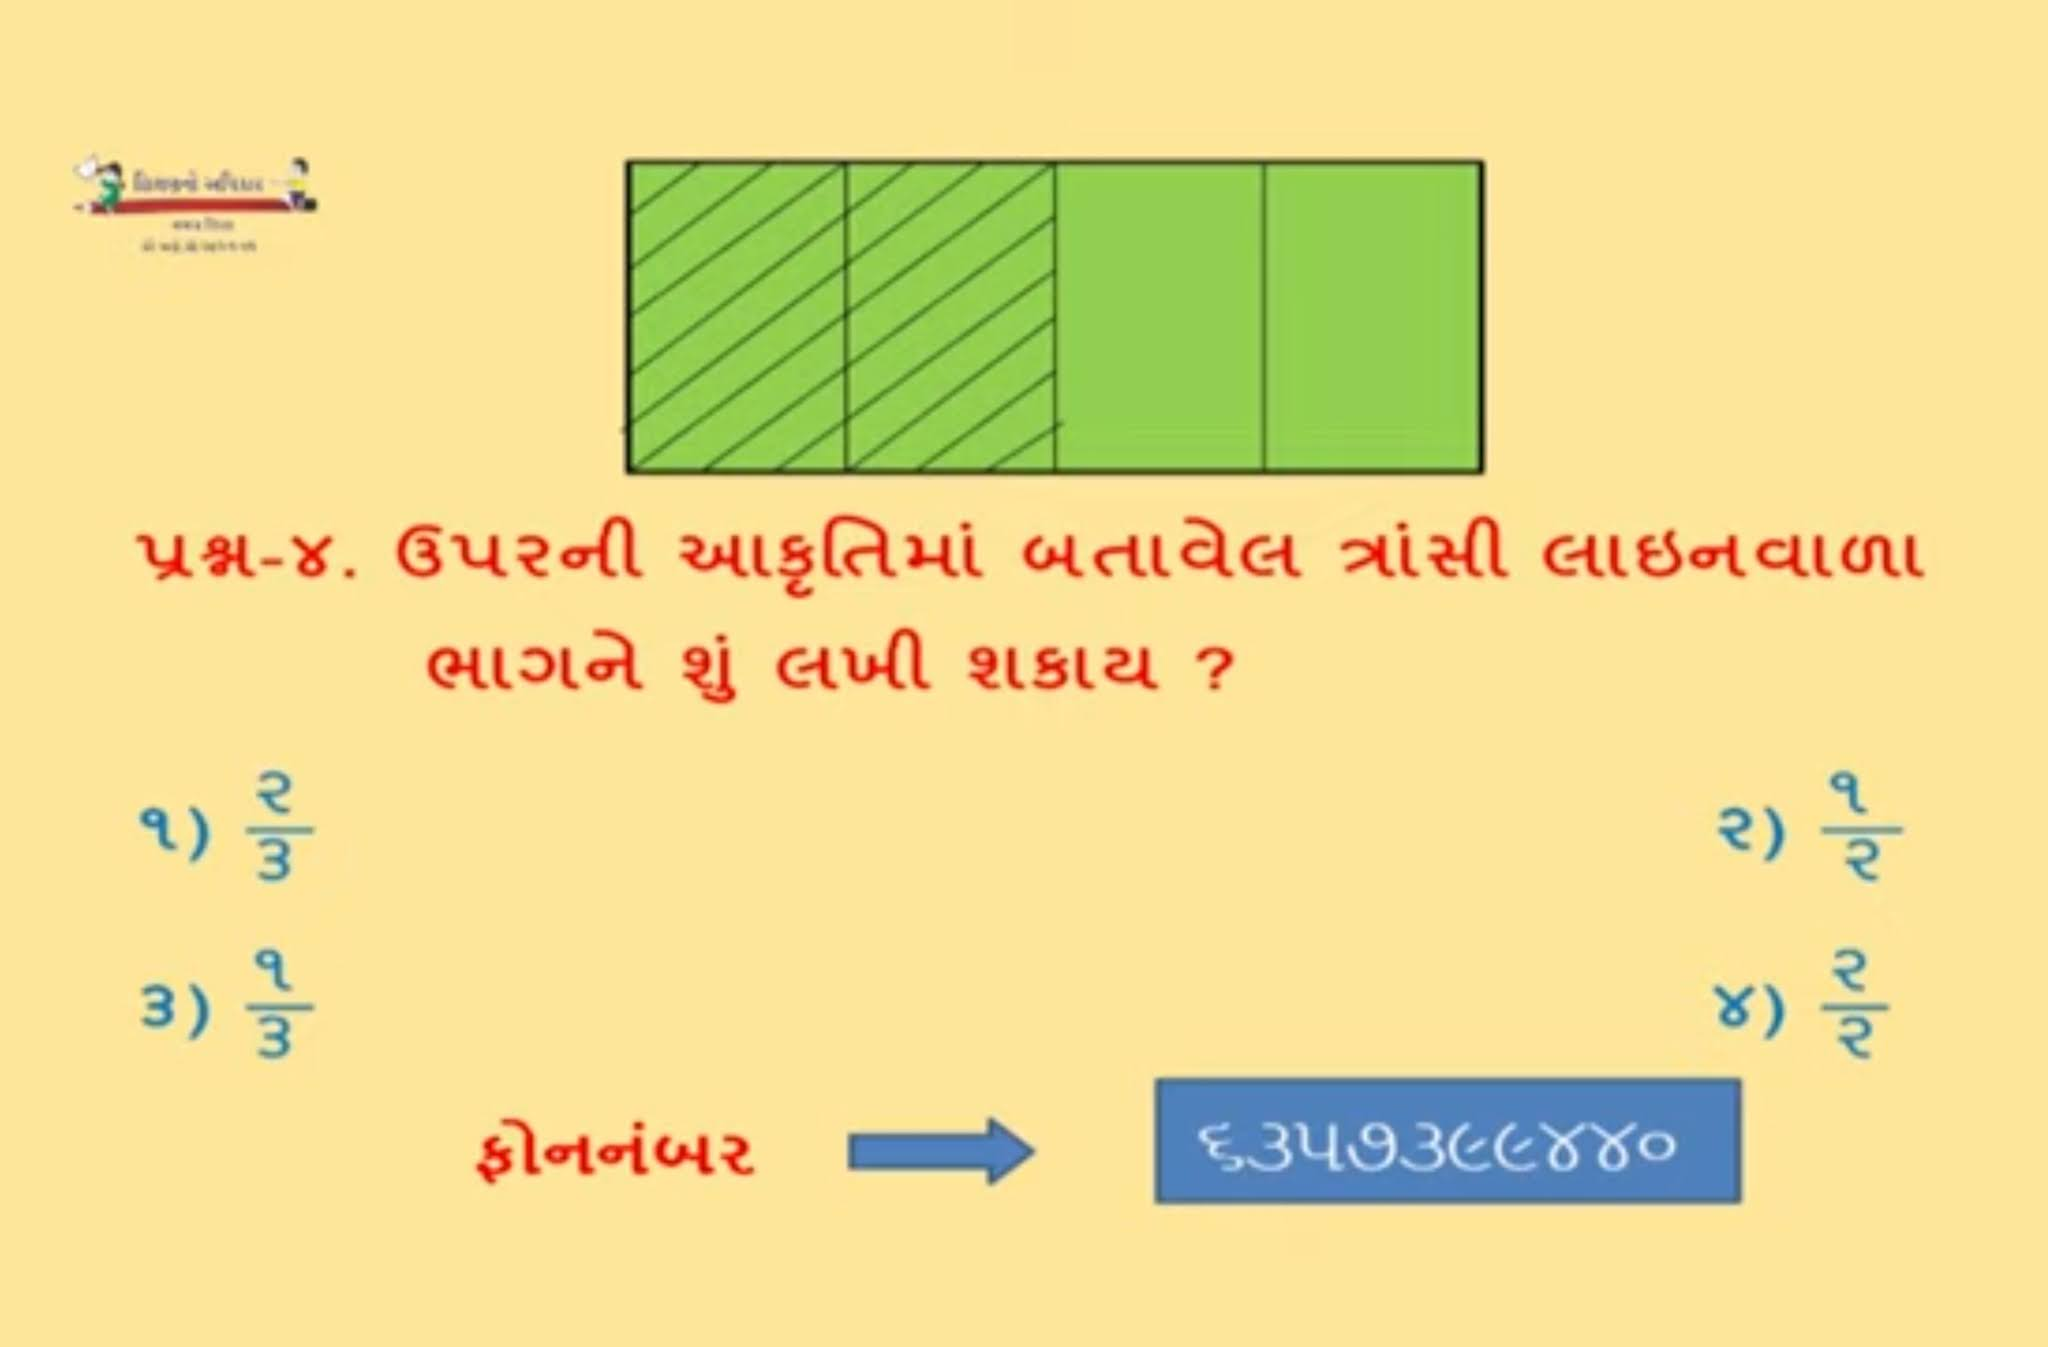 STD-3-4-5-DATE-15-12-2020-HOME-LEARNING-QUESTIONS-AND-ANSWERS.